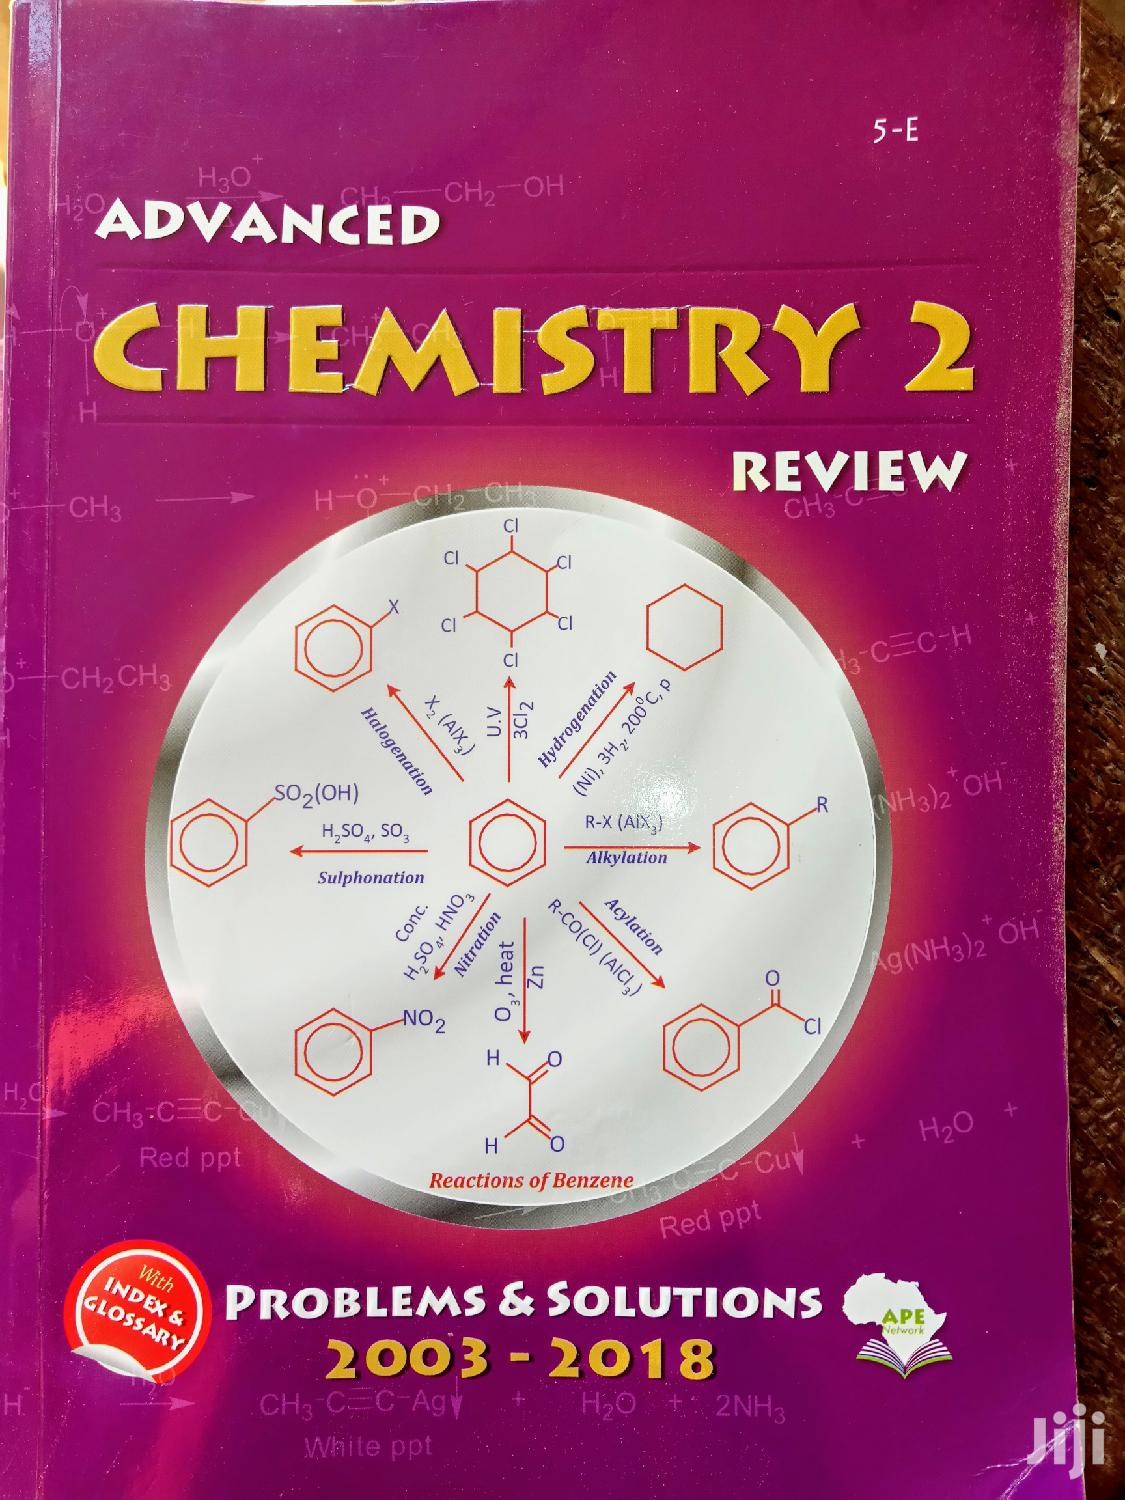 Archive: Advanced Level Chemistry Review